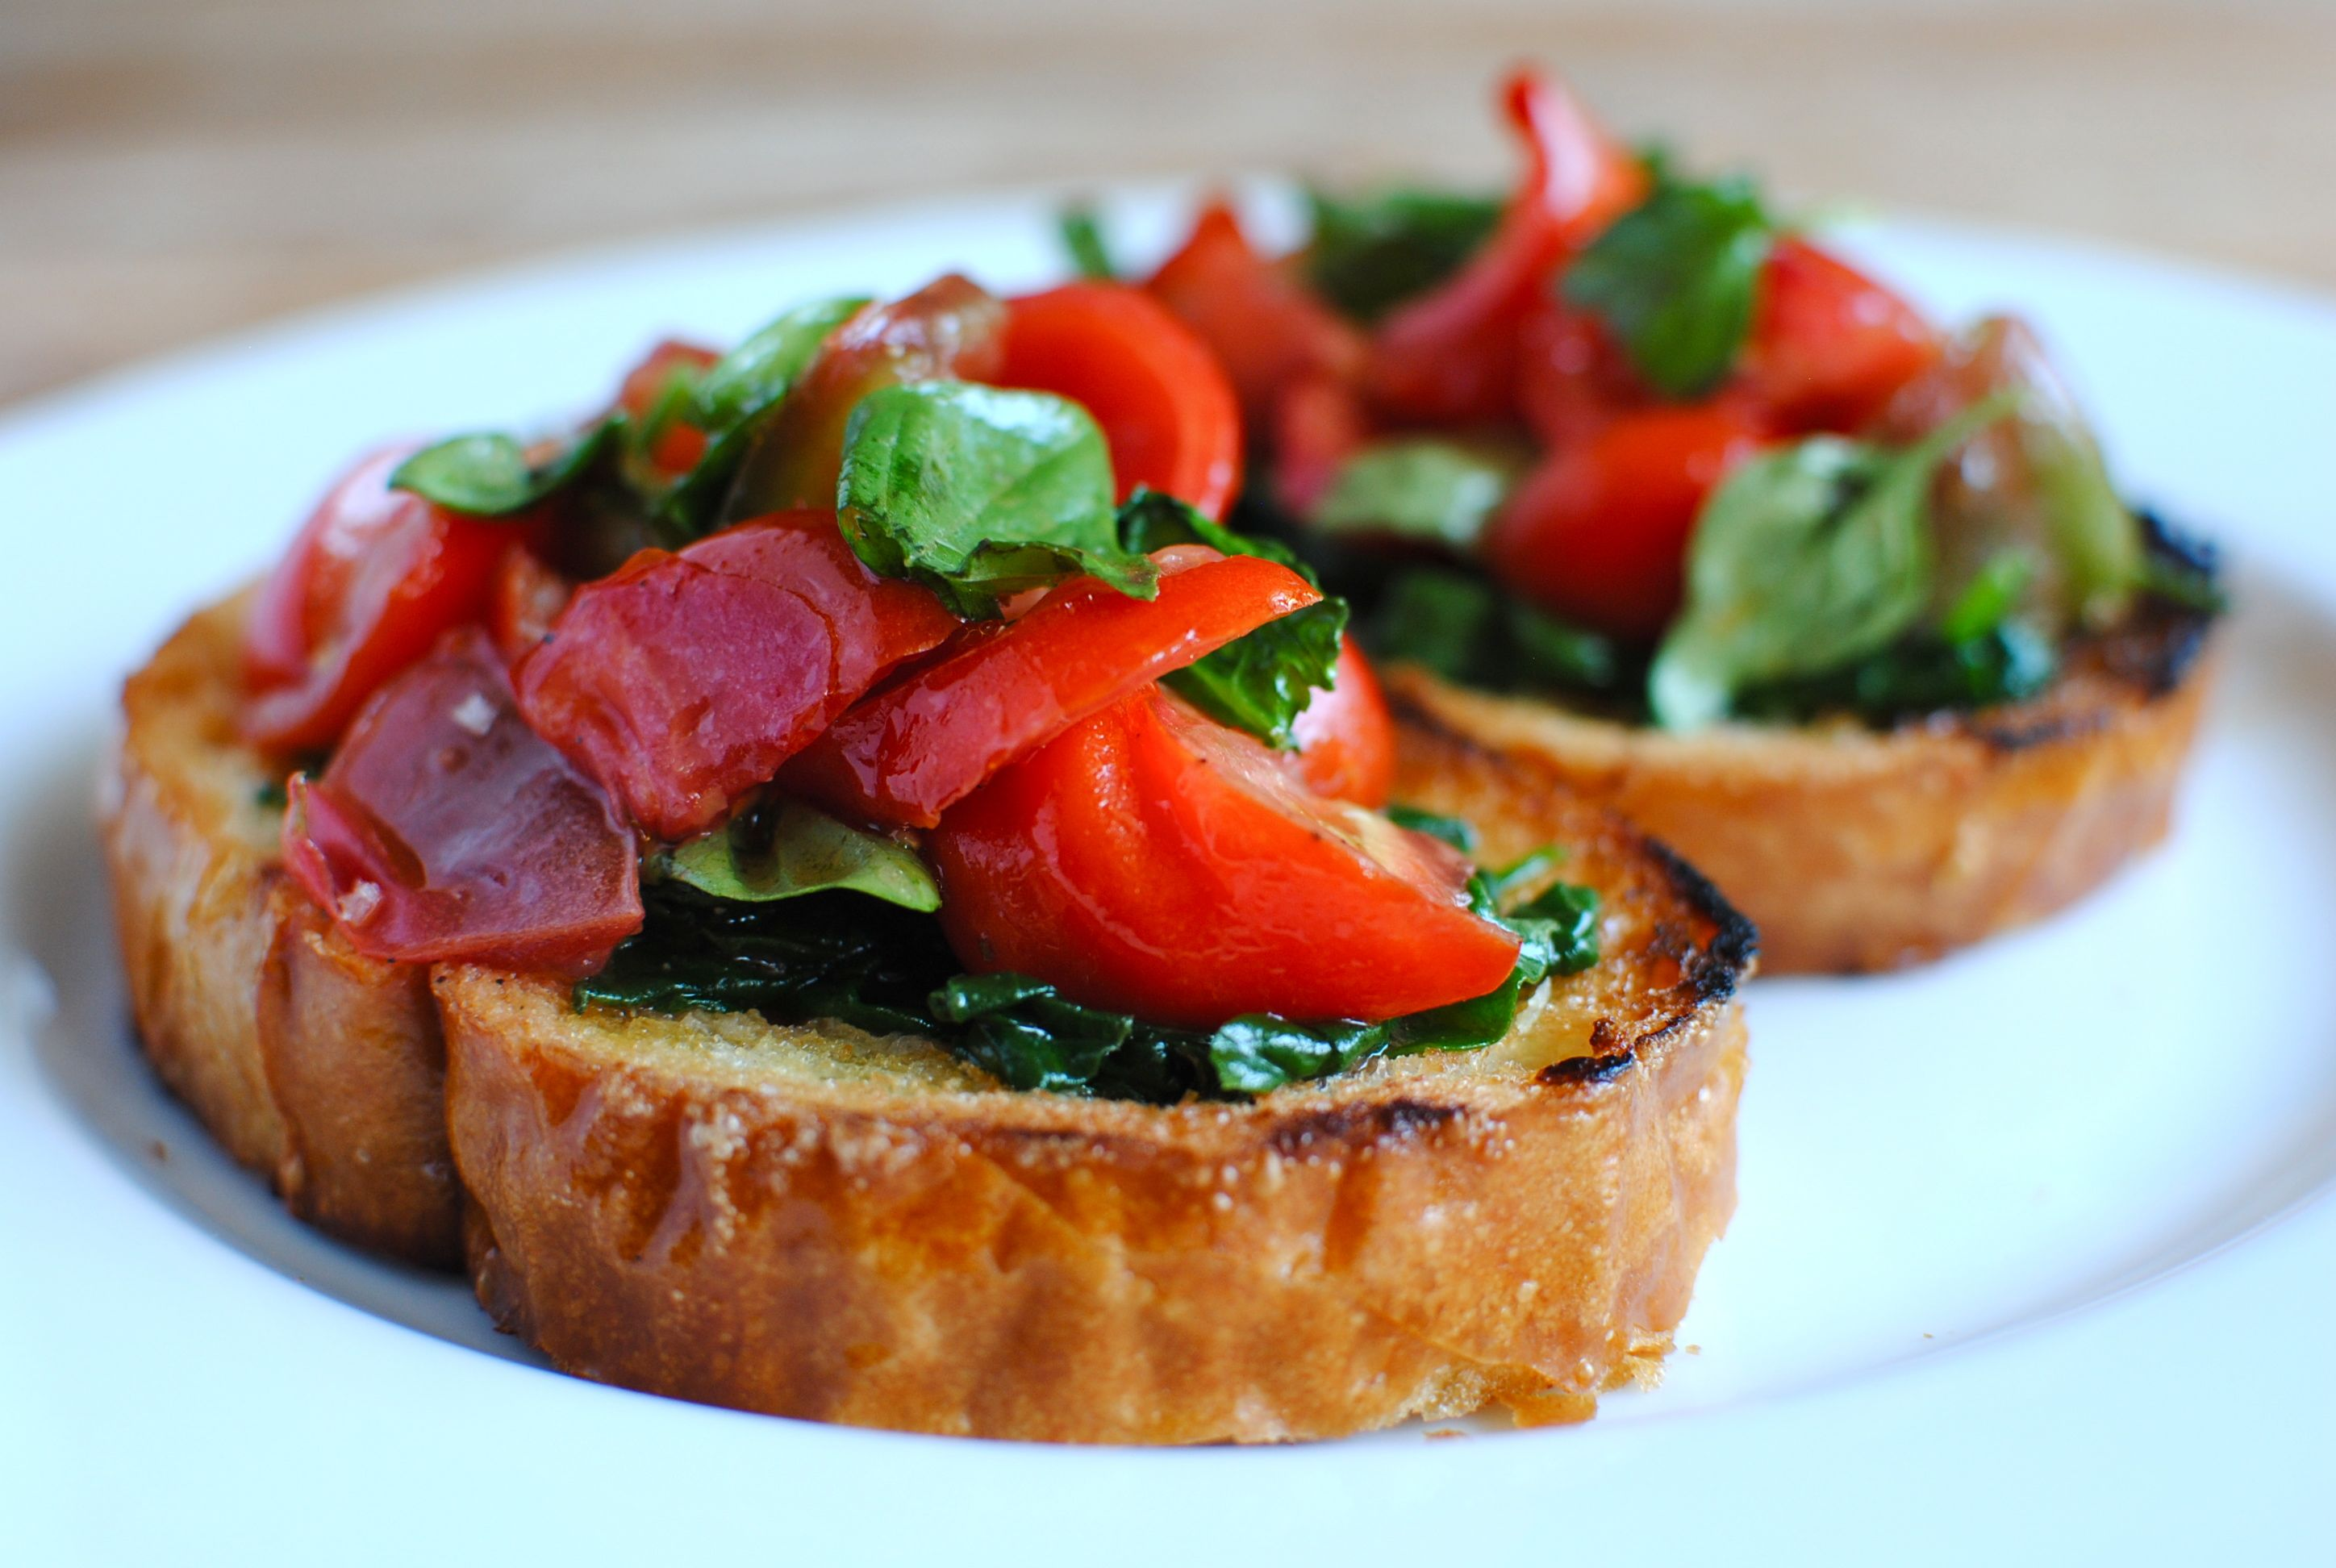 Tomato Bruschetta with Sauteed Spinach | Bev Cooks